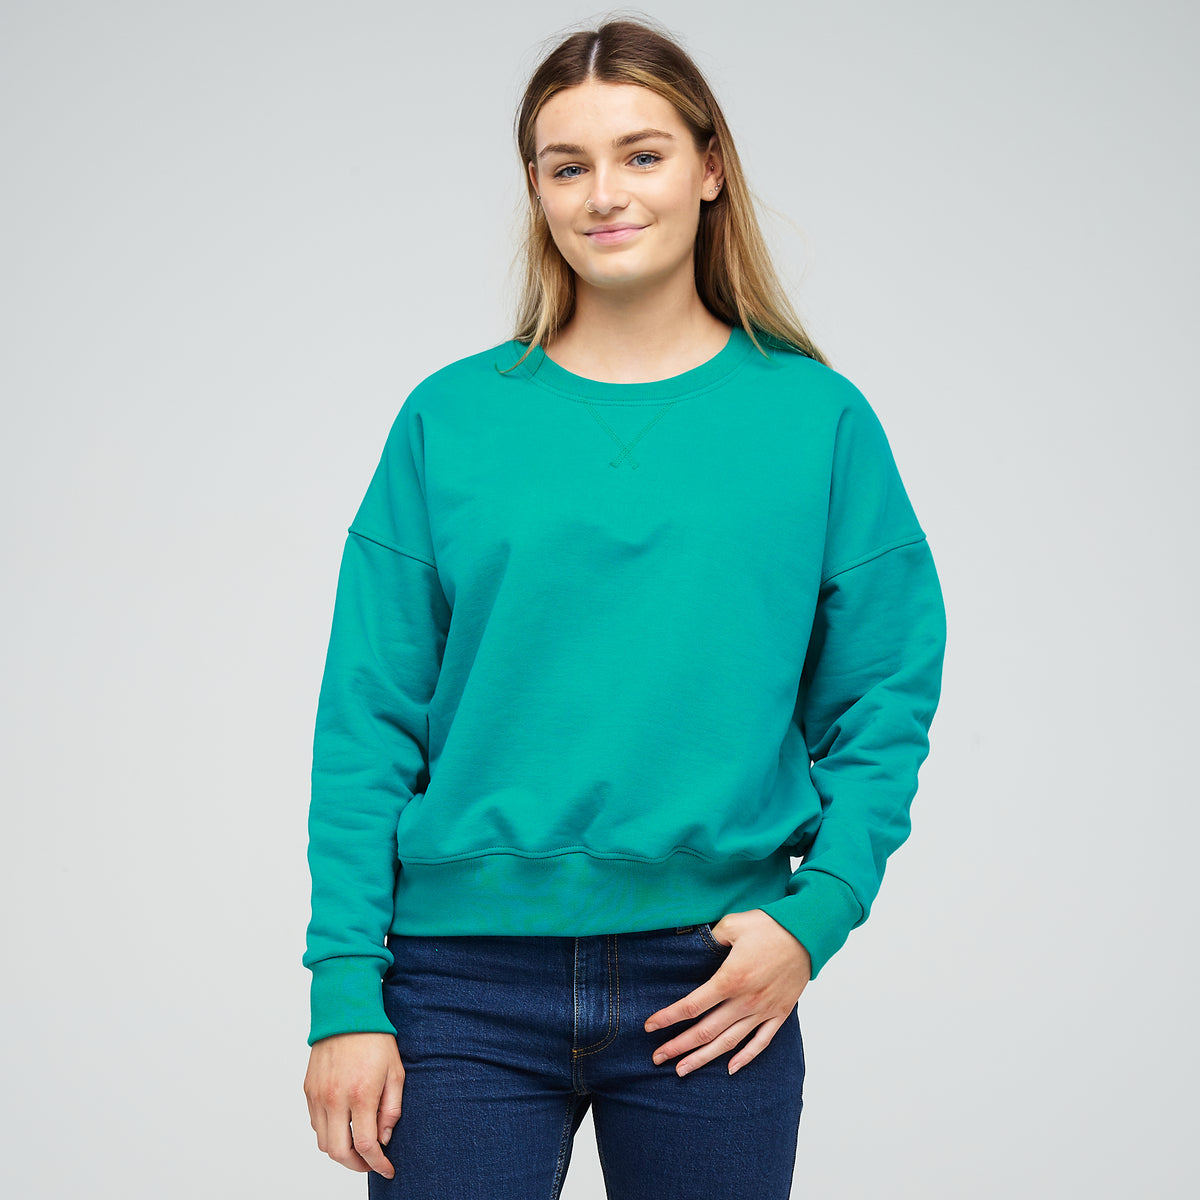 Women's Drop Shoulder Sweatshirt Emerald - Community Clothing